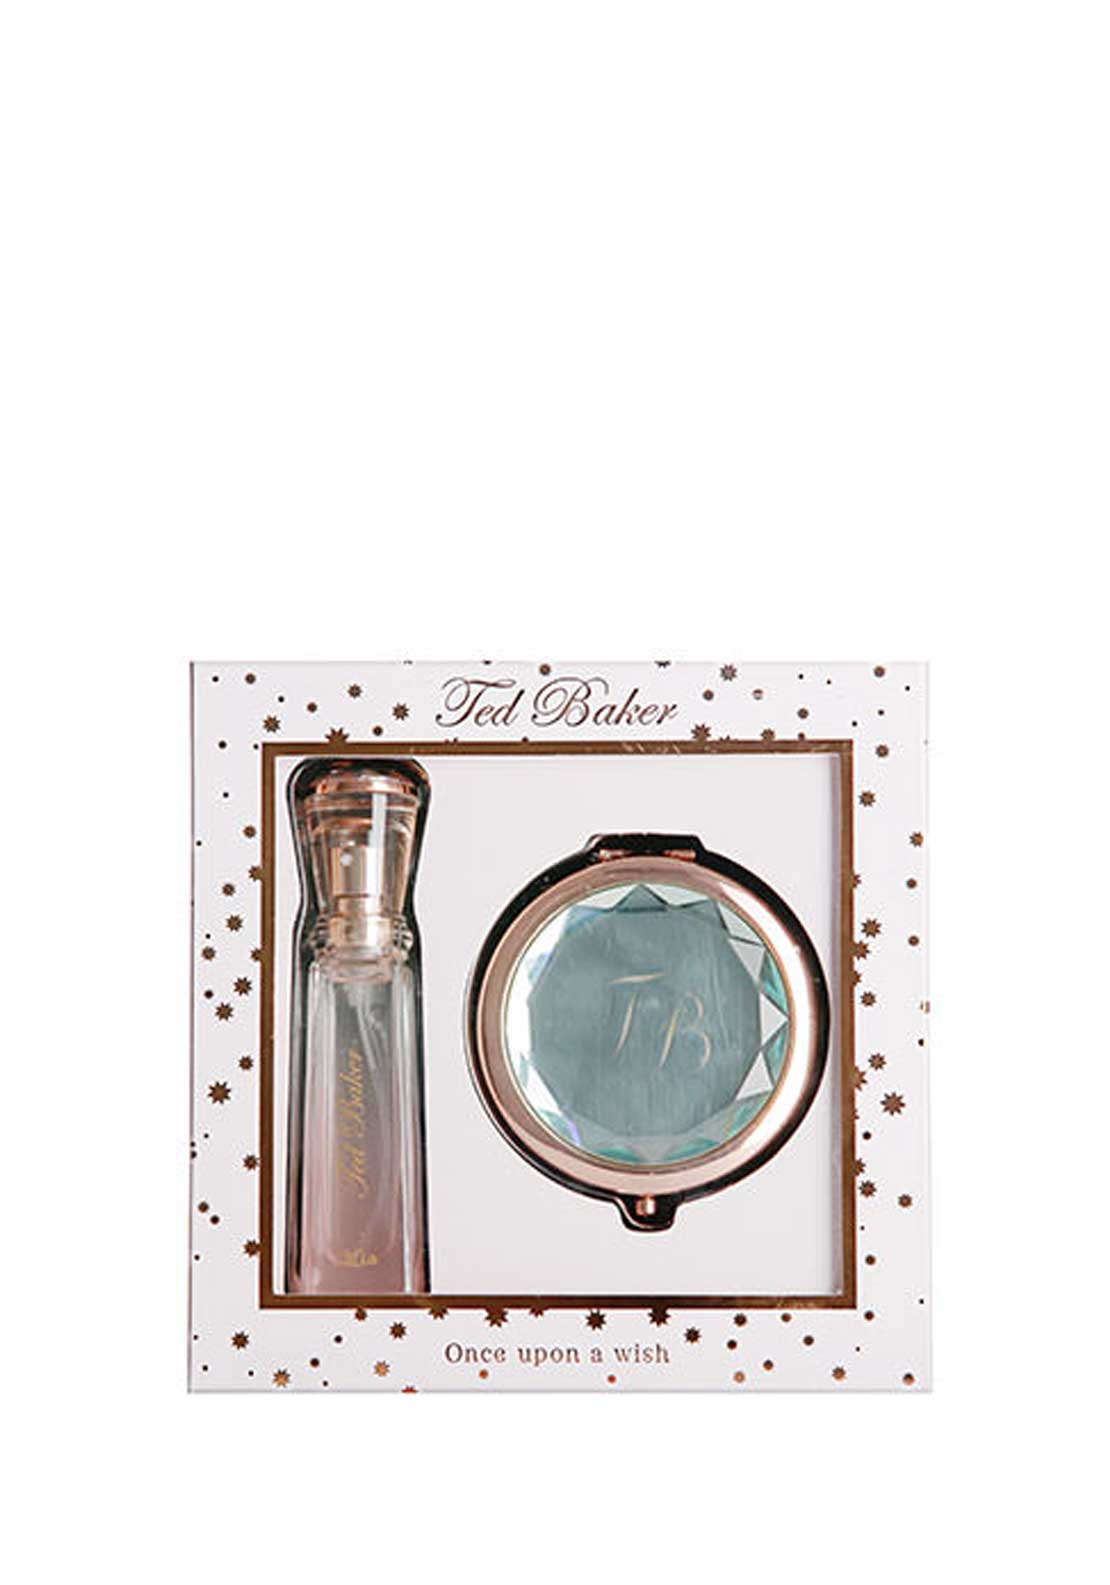 Ted Baker Once Upon A Wish Mia Gift Set, 10ml